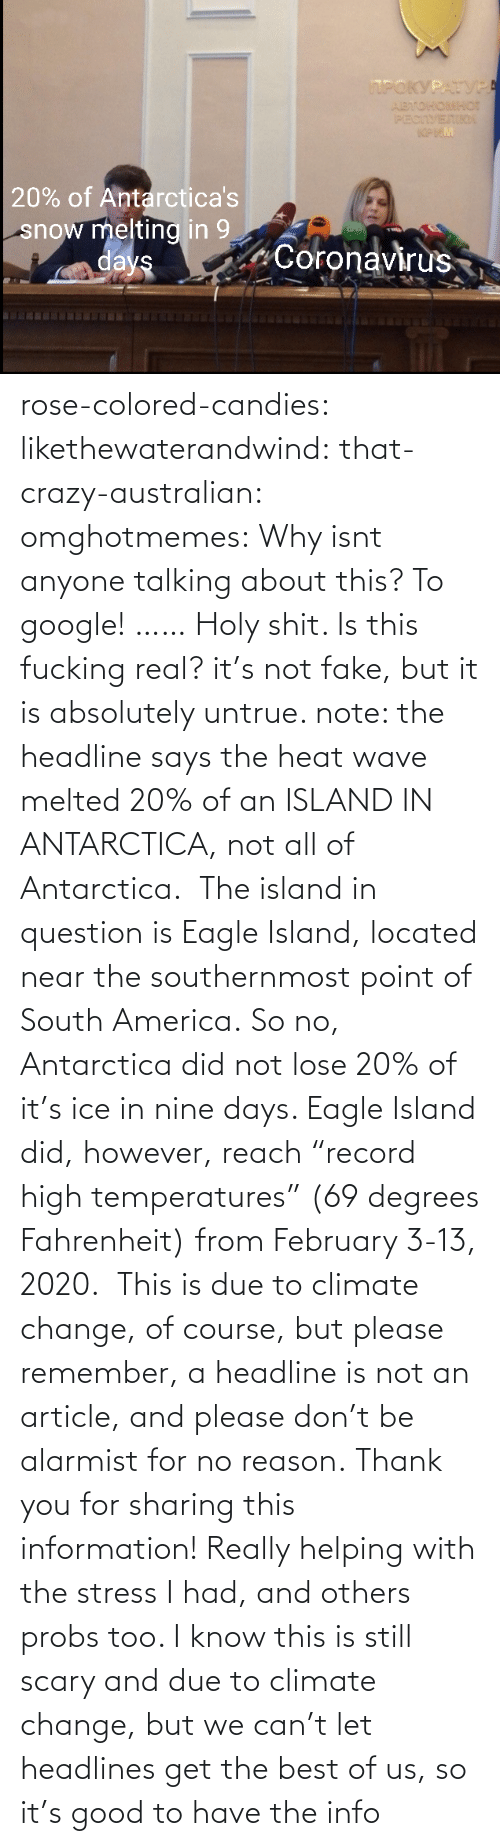 "fake: rose-colored-candies: likethewaterandwind:   that-crazy-australian:  omghotmemes:  Why isnt anyone talking about this?   To google!  ……   Holy shit. Is this fucking real?   it's not fake, but it is absolutely untrue. note: the headline says the heat wave melted 20% of an ISLAND IN ANTARCTICA, not all of Antarctica.  The island in question is Eagle Island, located near the southernmost point of South America. So no, Antarctica did not lose 20% of it's ice in nine days. Eagle Island did, however, reach ""record high temperatures"" (69 degrees Fahrenheit) from February 3-13, 2020.  This is due to climate change, of course, but please remember, a headline is not an article, and please don't be alarmist for no reason.    Thank you for sharing this information! Really helping with the stress I had, and others probs too. I know this is still scary and due to climate change, but we can't let headlines get the best of us, so it's good to have the info"